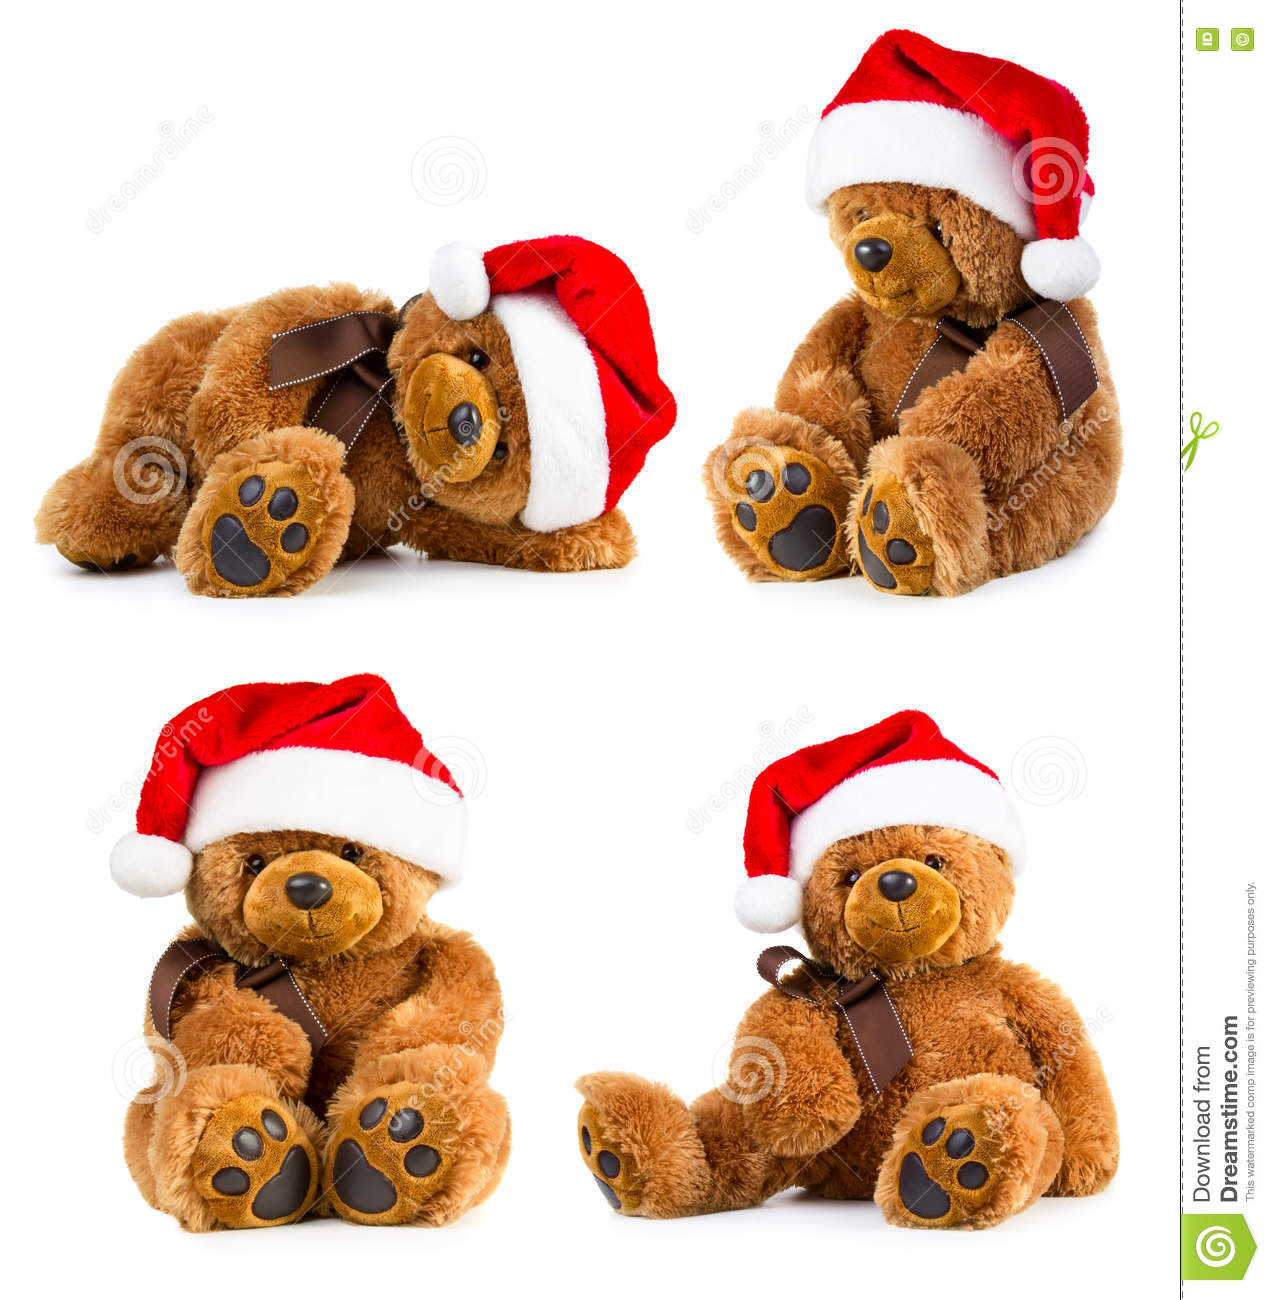 b149f1d27db83 Four toy teddy bear wearing a santa hat isolated on white background